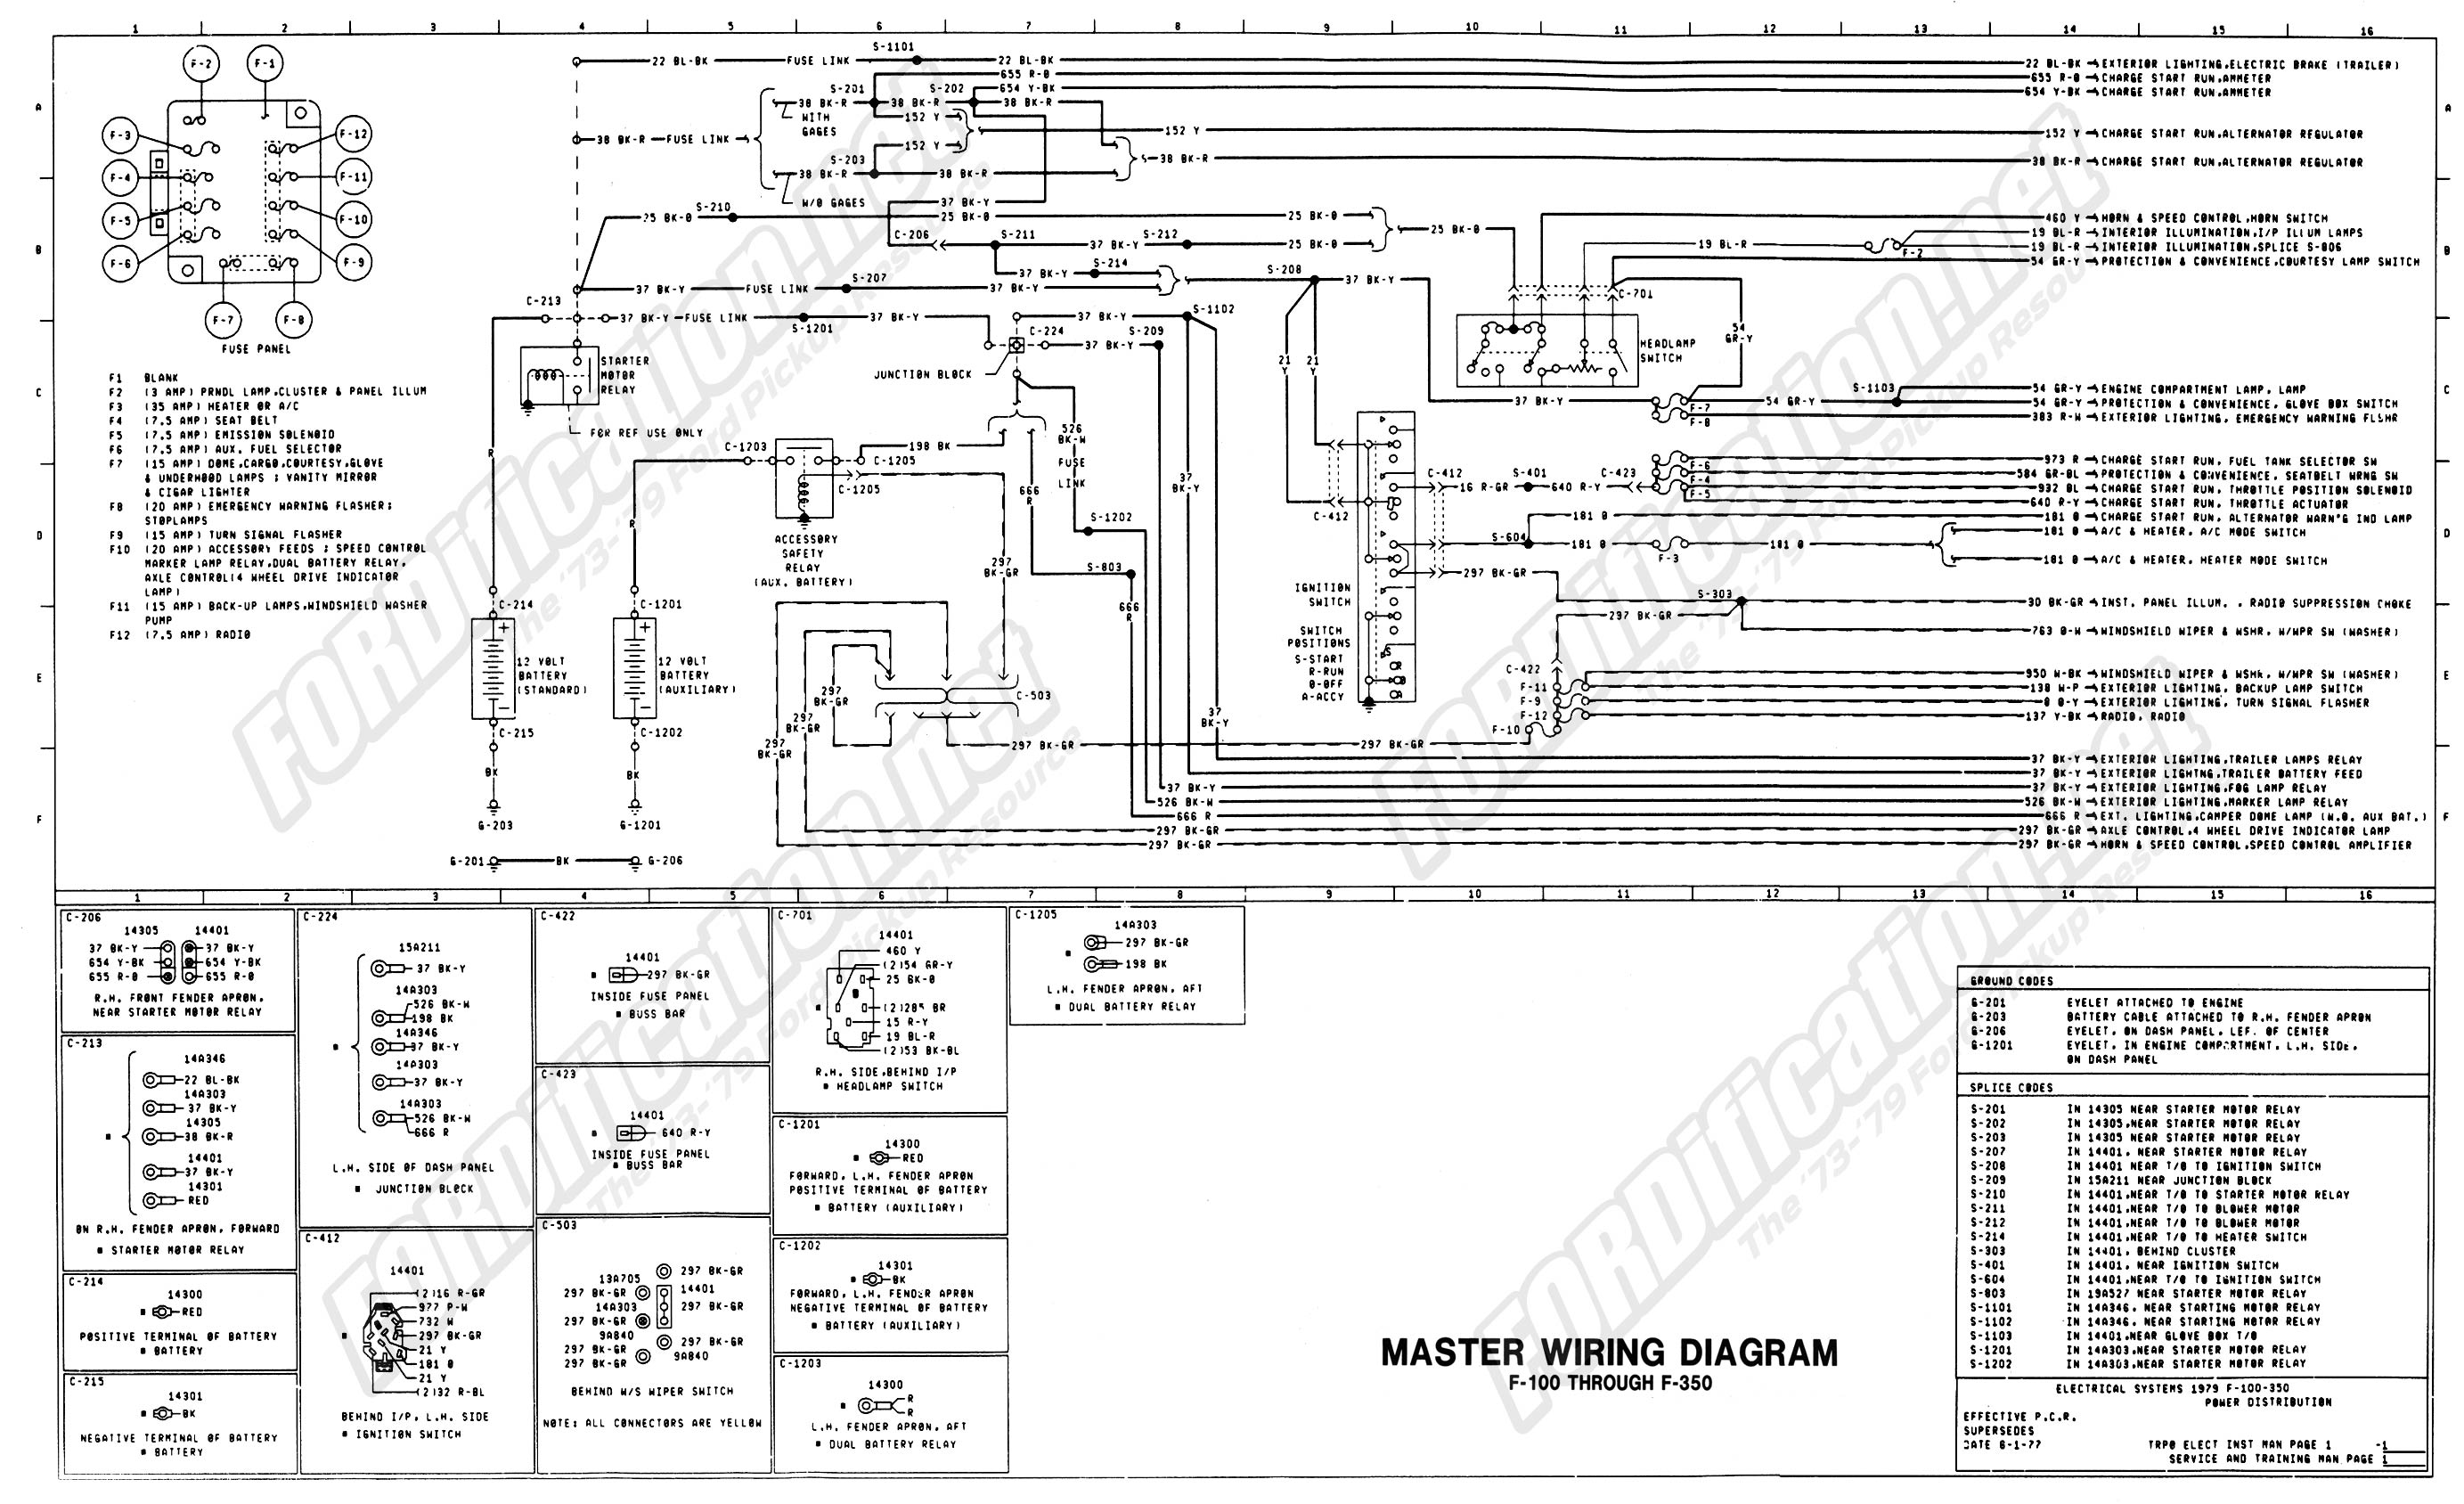 wiring_79master_1of9 1977 ford f100 alternator wiring diagram wiring diagram and 1973 ford f100 wiring diagram at nearapp.co